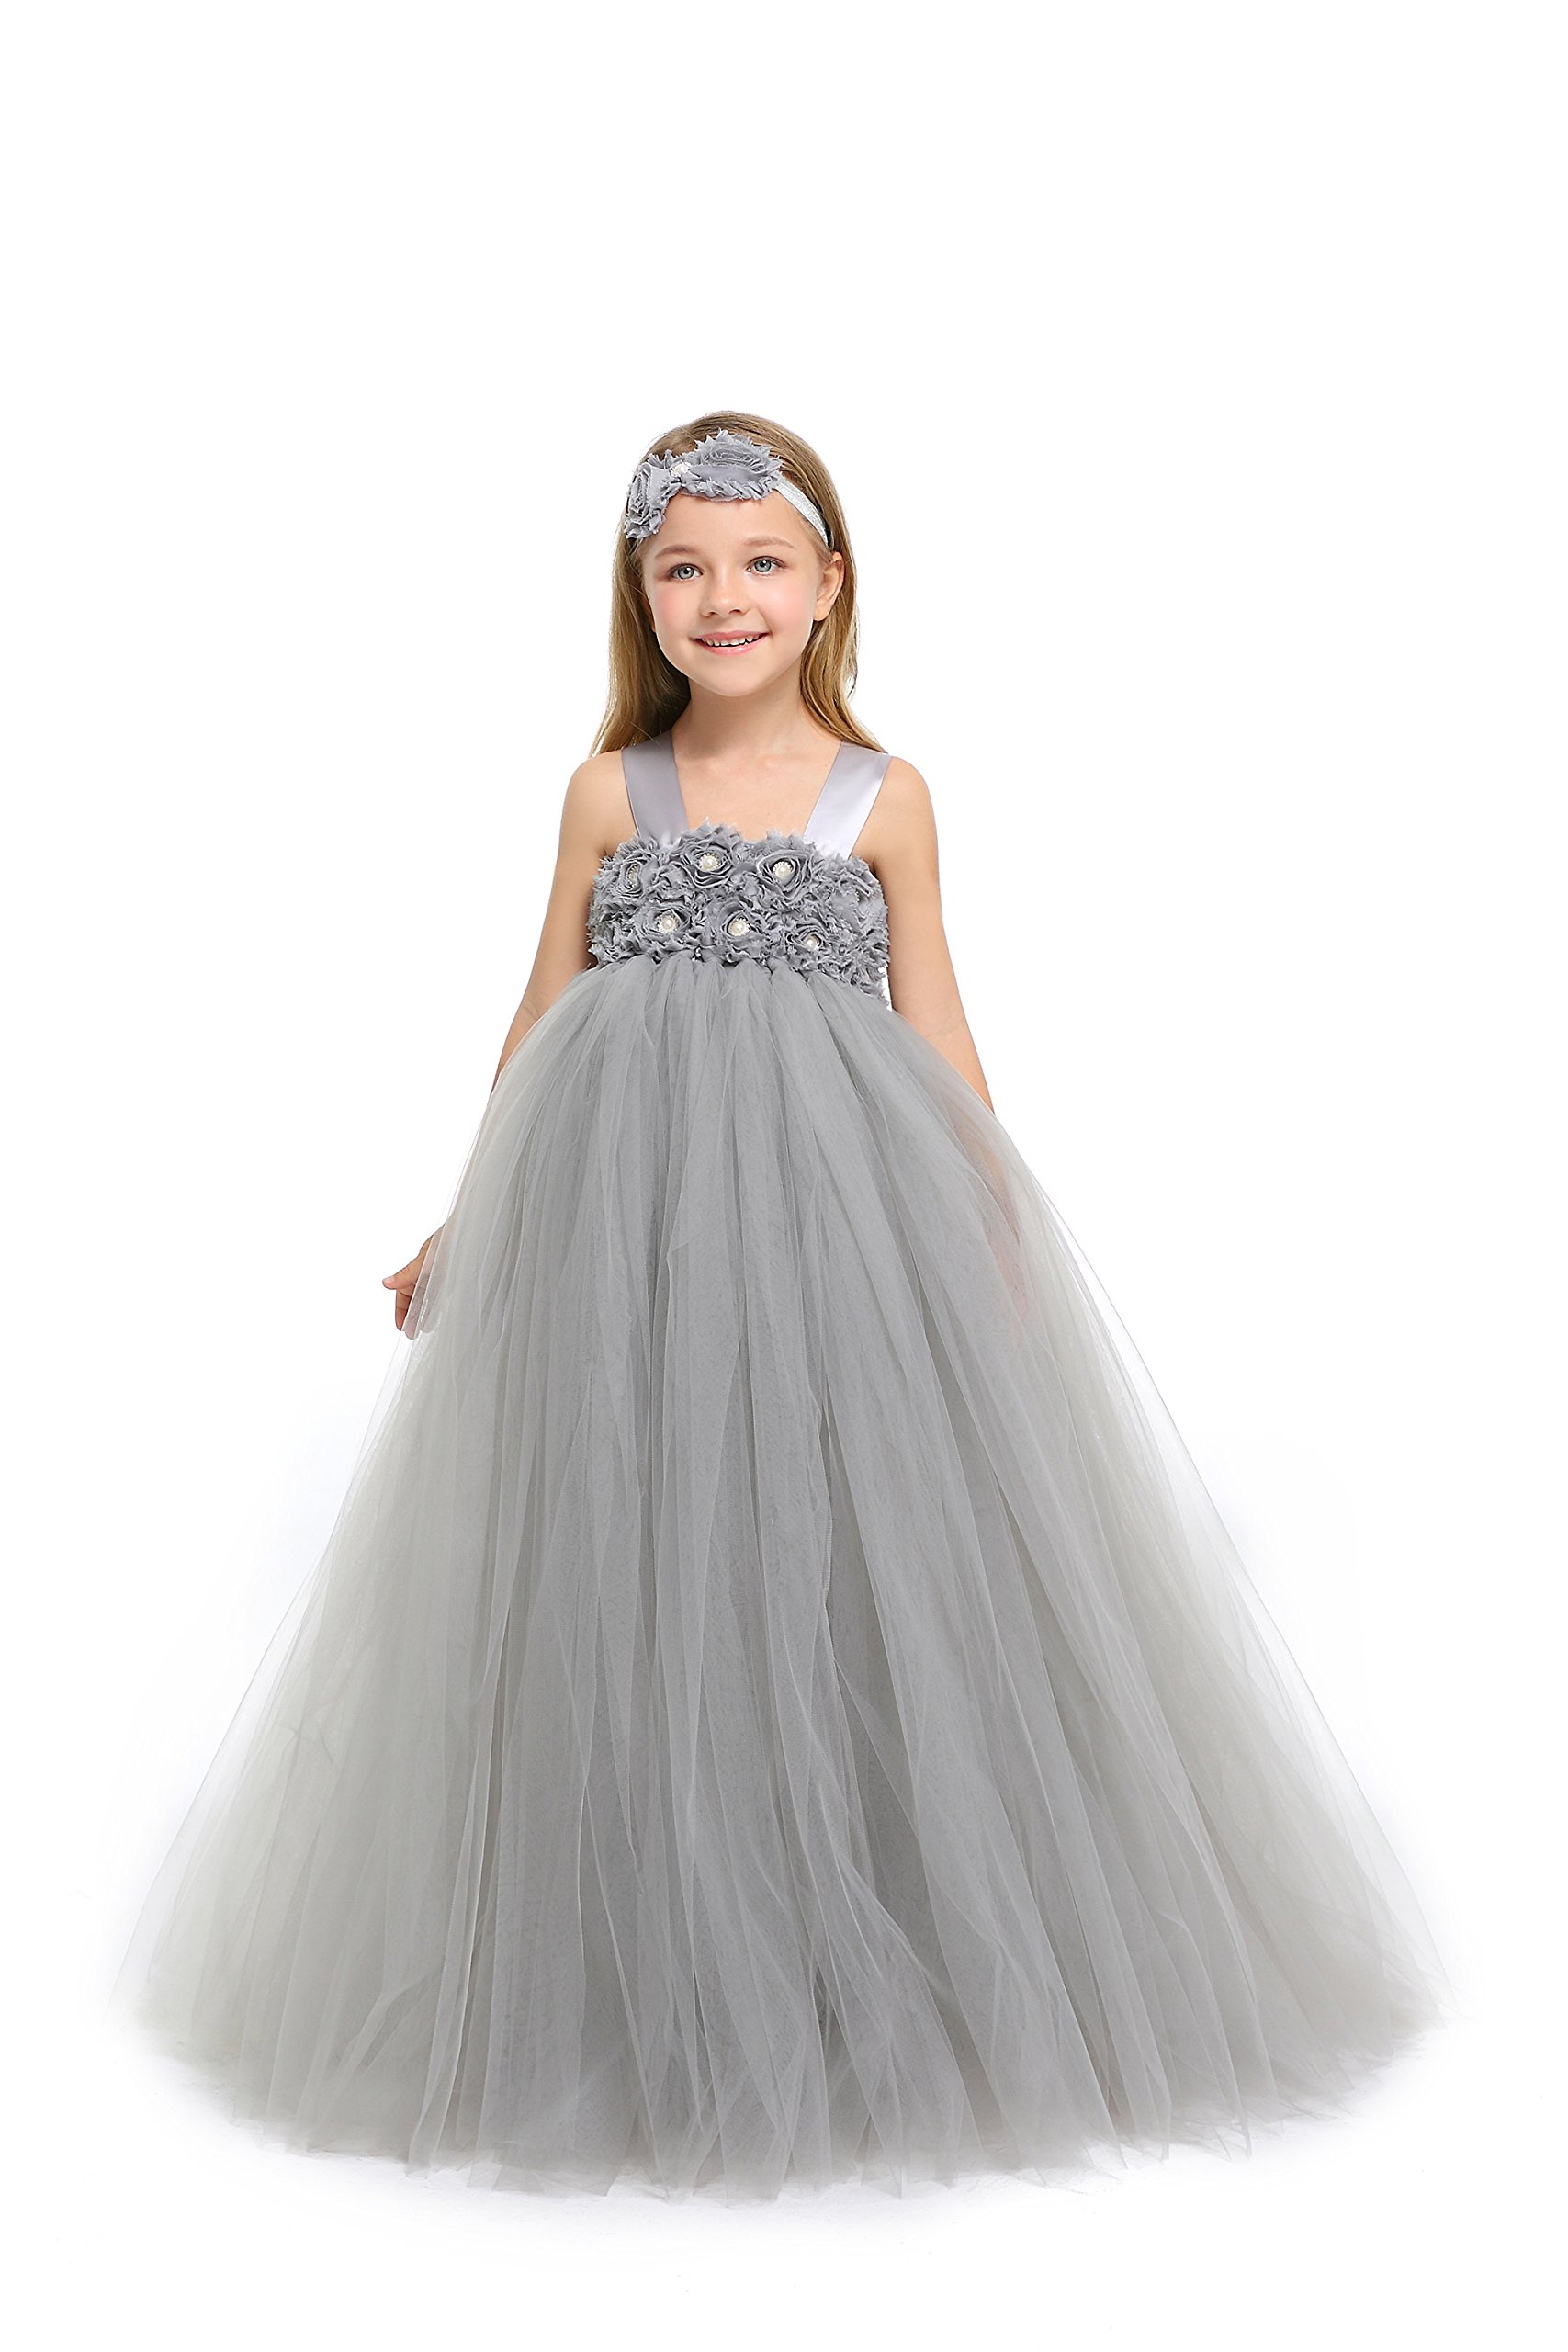 MALIBULICo Fluffy Flower Girl Tutu Dress with Matching Headband for Wedding and Birthday Party by MALIBULICo (Image #1)